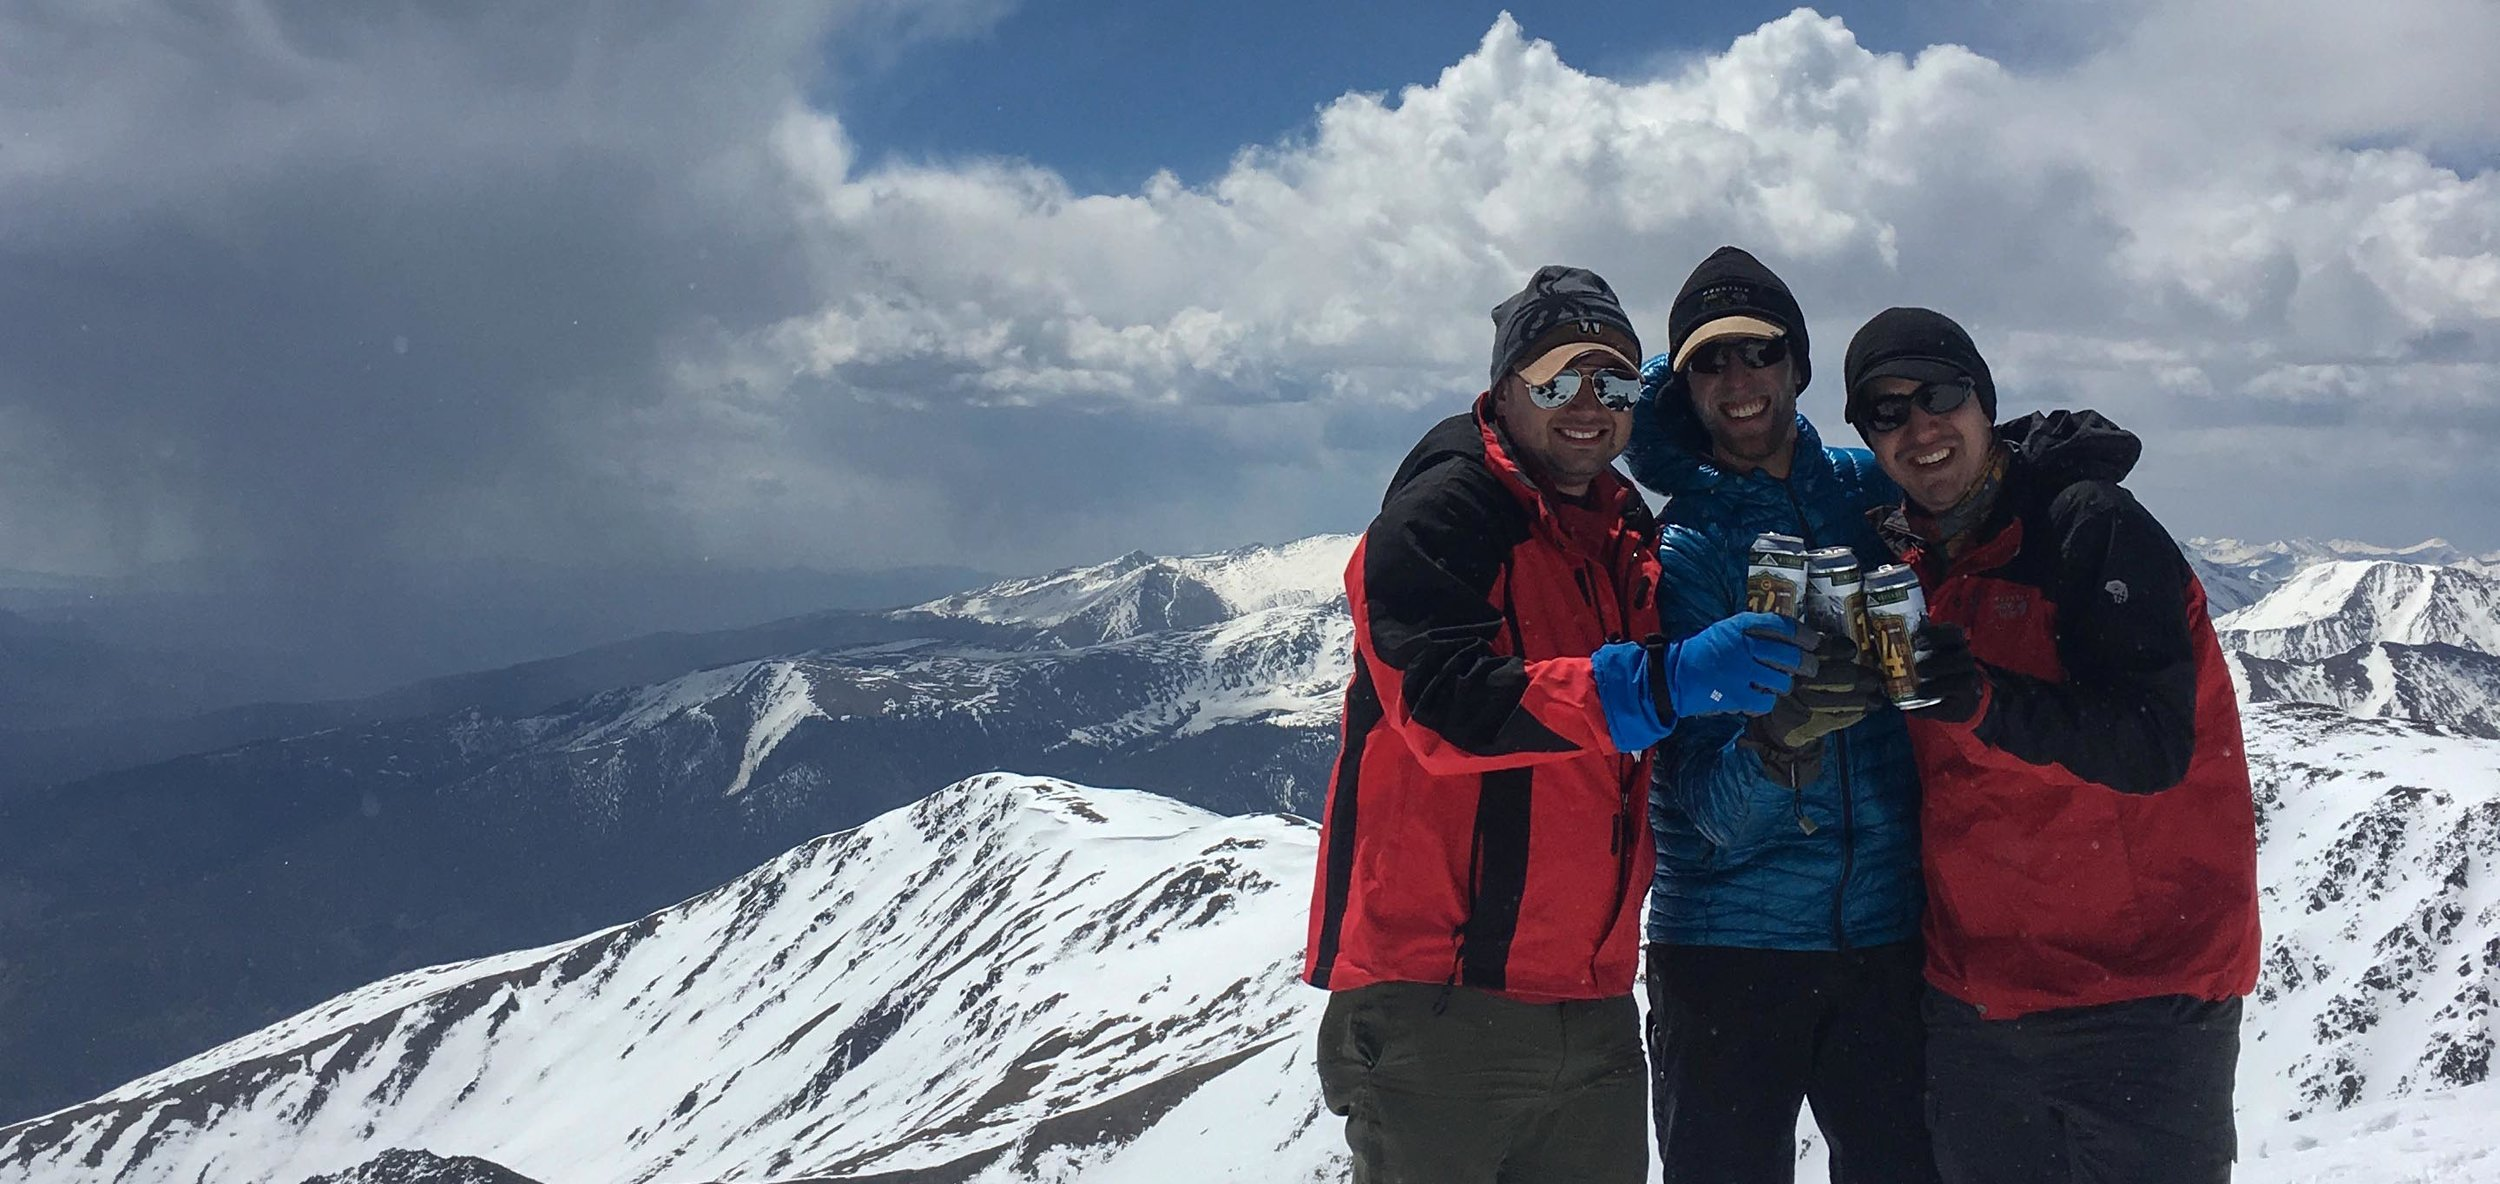 Ryan Haupt and friends at the summit of Mt. Elbert. (photo courtesy Ryan Haupt)